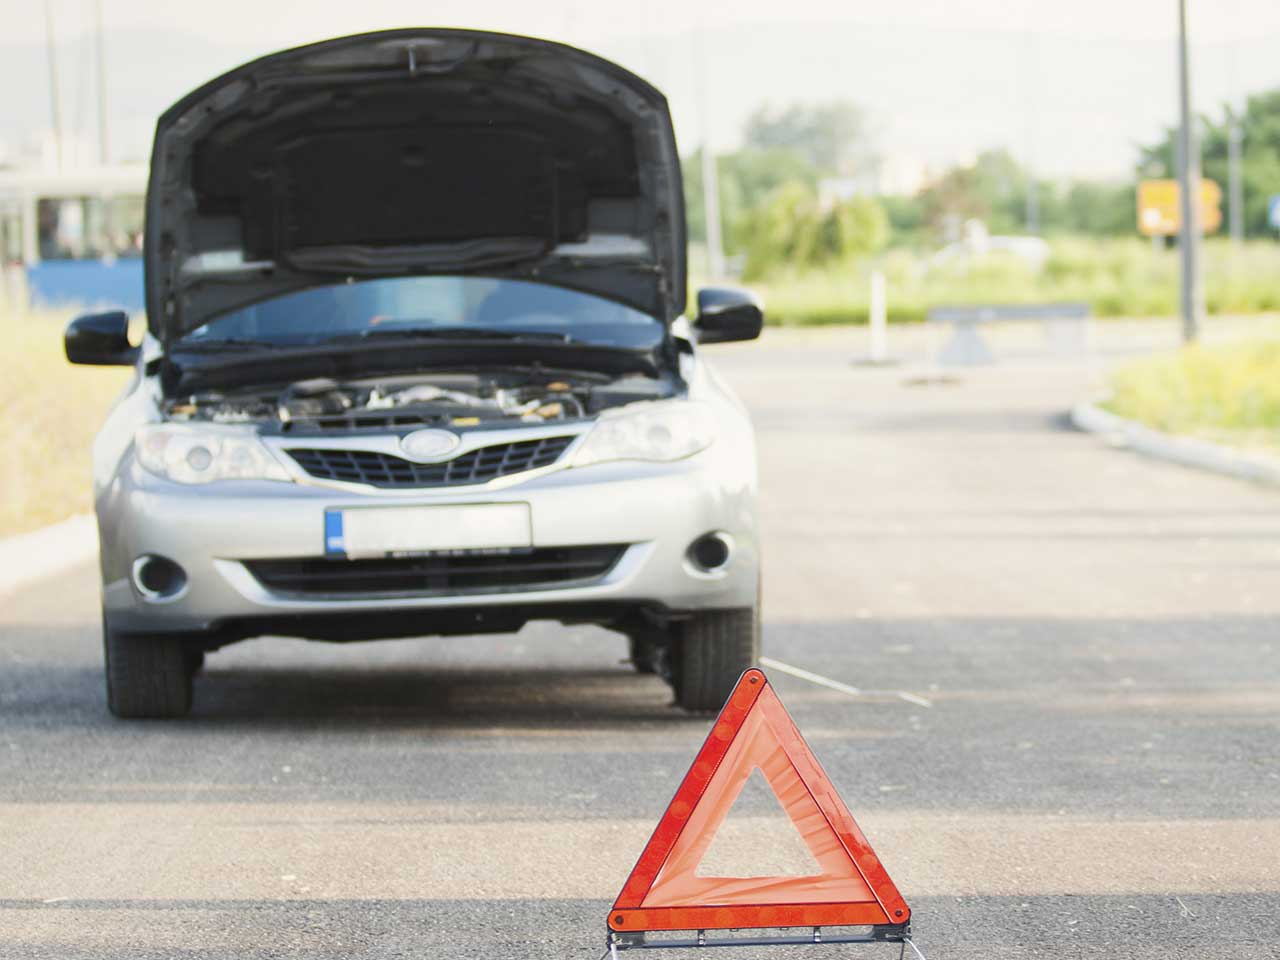 Broken down car with bonnet raised and emergency triangle laid out on the road ahead of the vehicle.